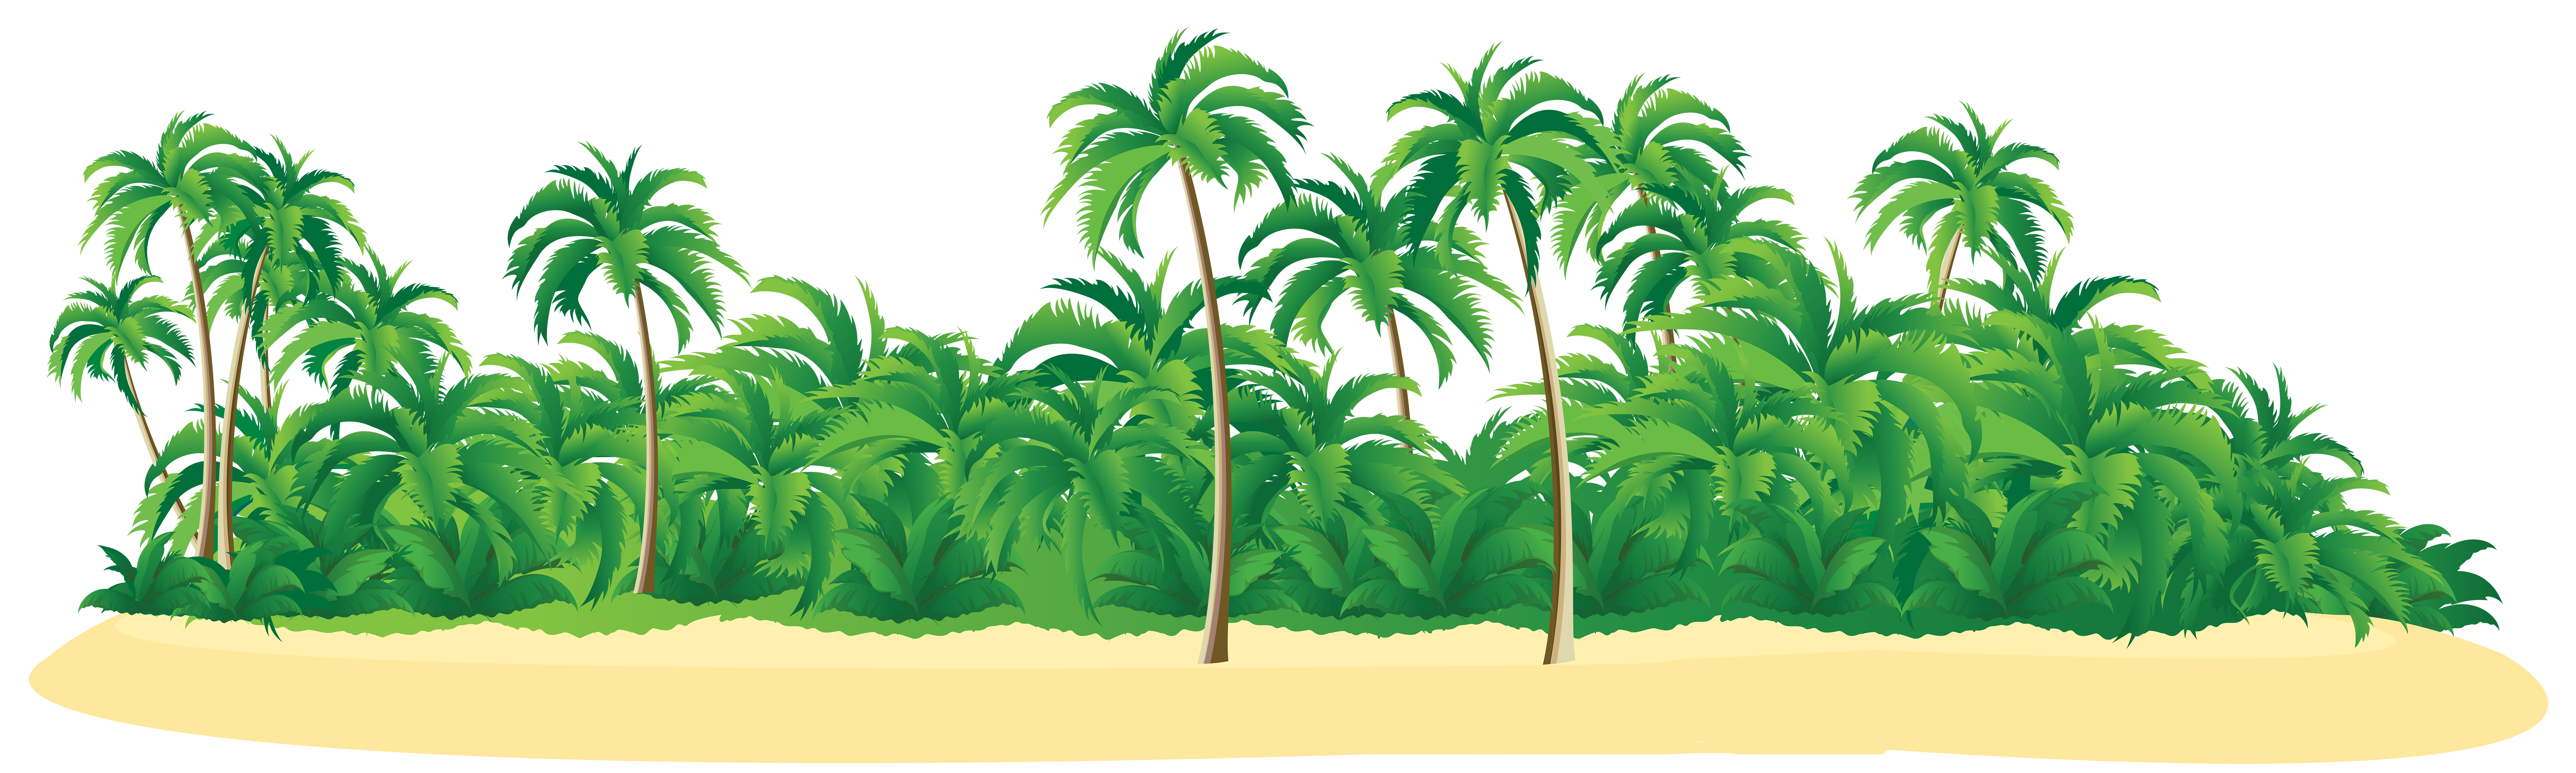 Island palm tree clipart graphic library download Summer Tropical Island with Palm Trees PNG Clip Art Image | Clip Art ... graphic library download